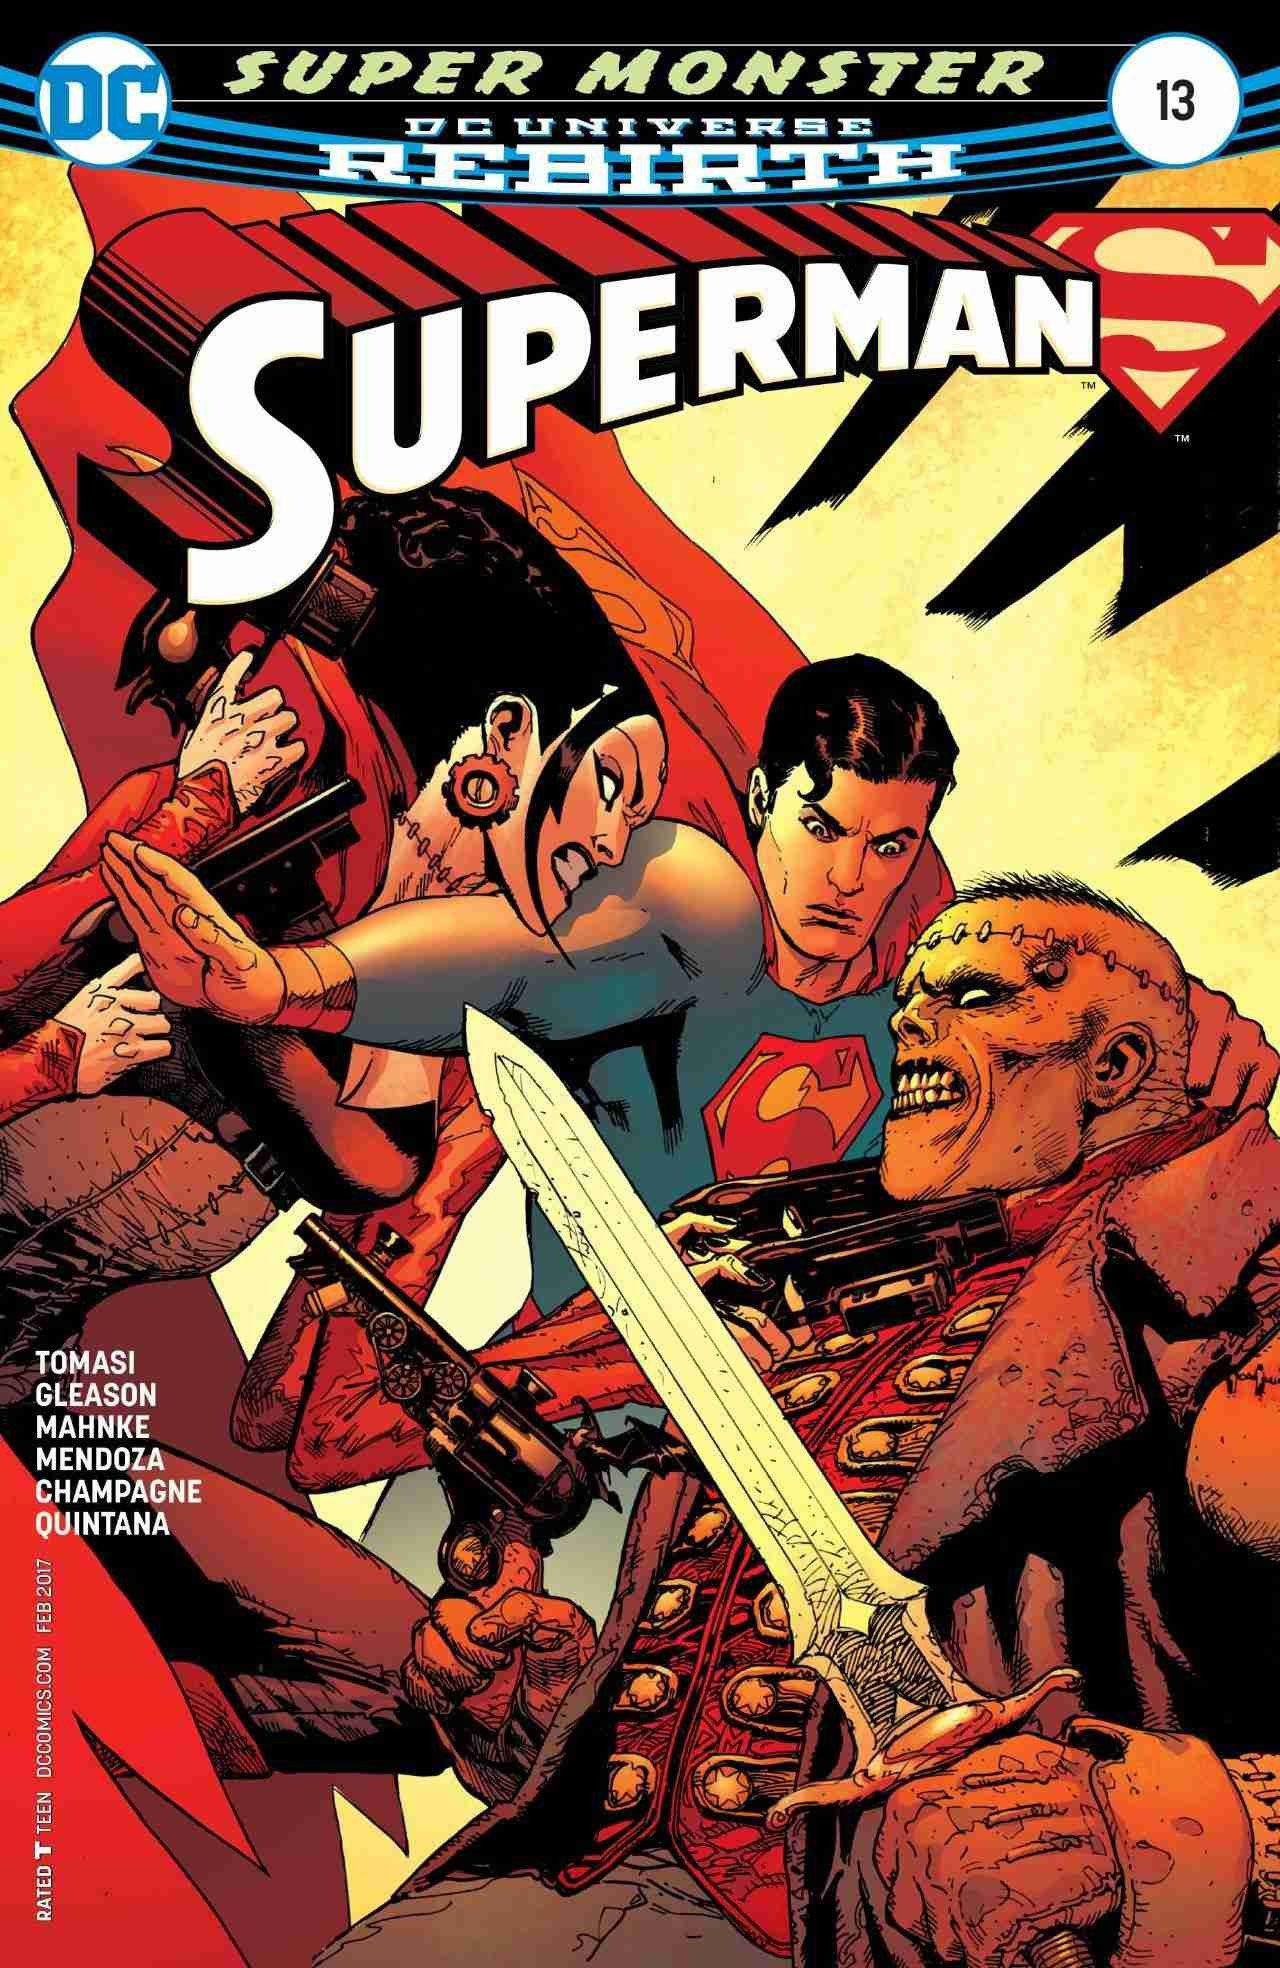 Superman (2016) #13 - Comics n Pop - Comic - DC Comics